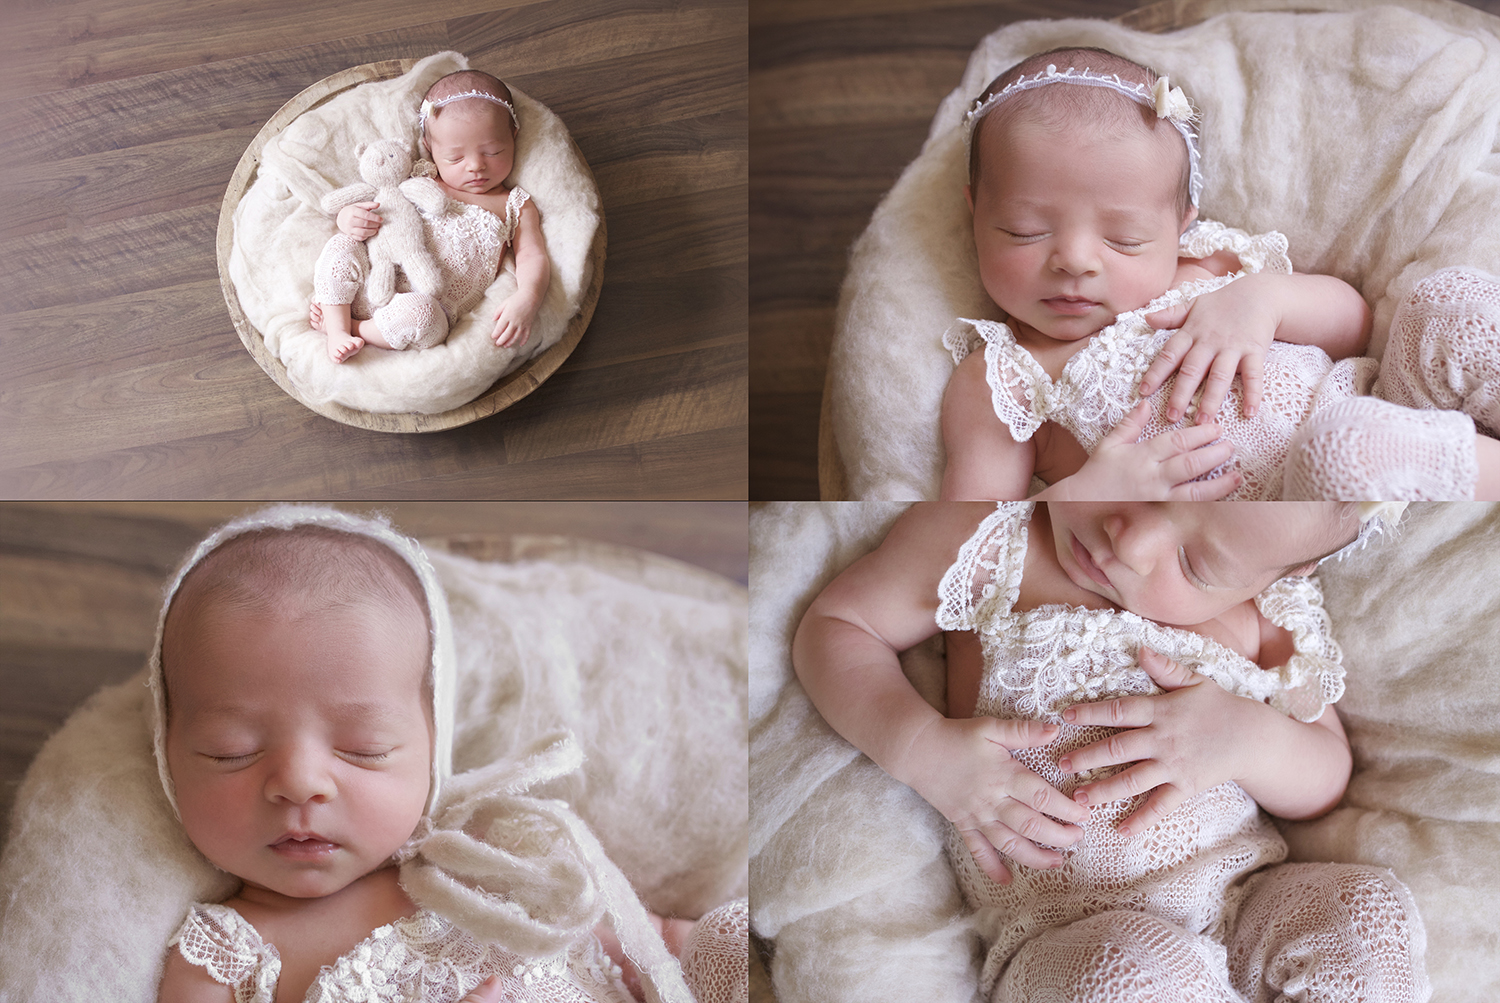 Newborn baby girl sleeping in round wooden bowl wearing cream lace romper with cream fur and bonnet and bear on wooden floor